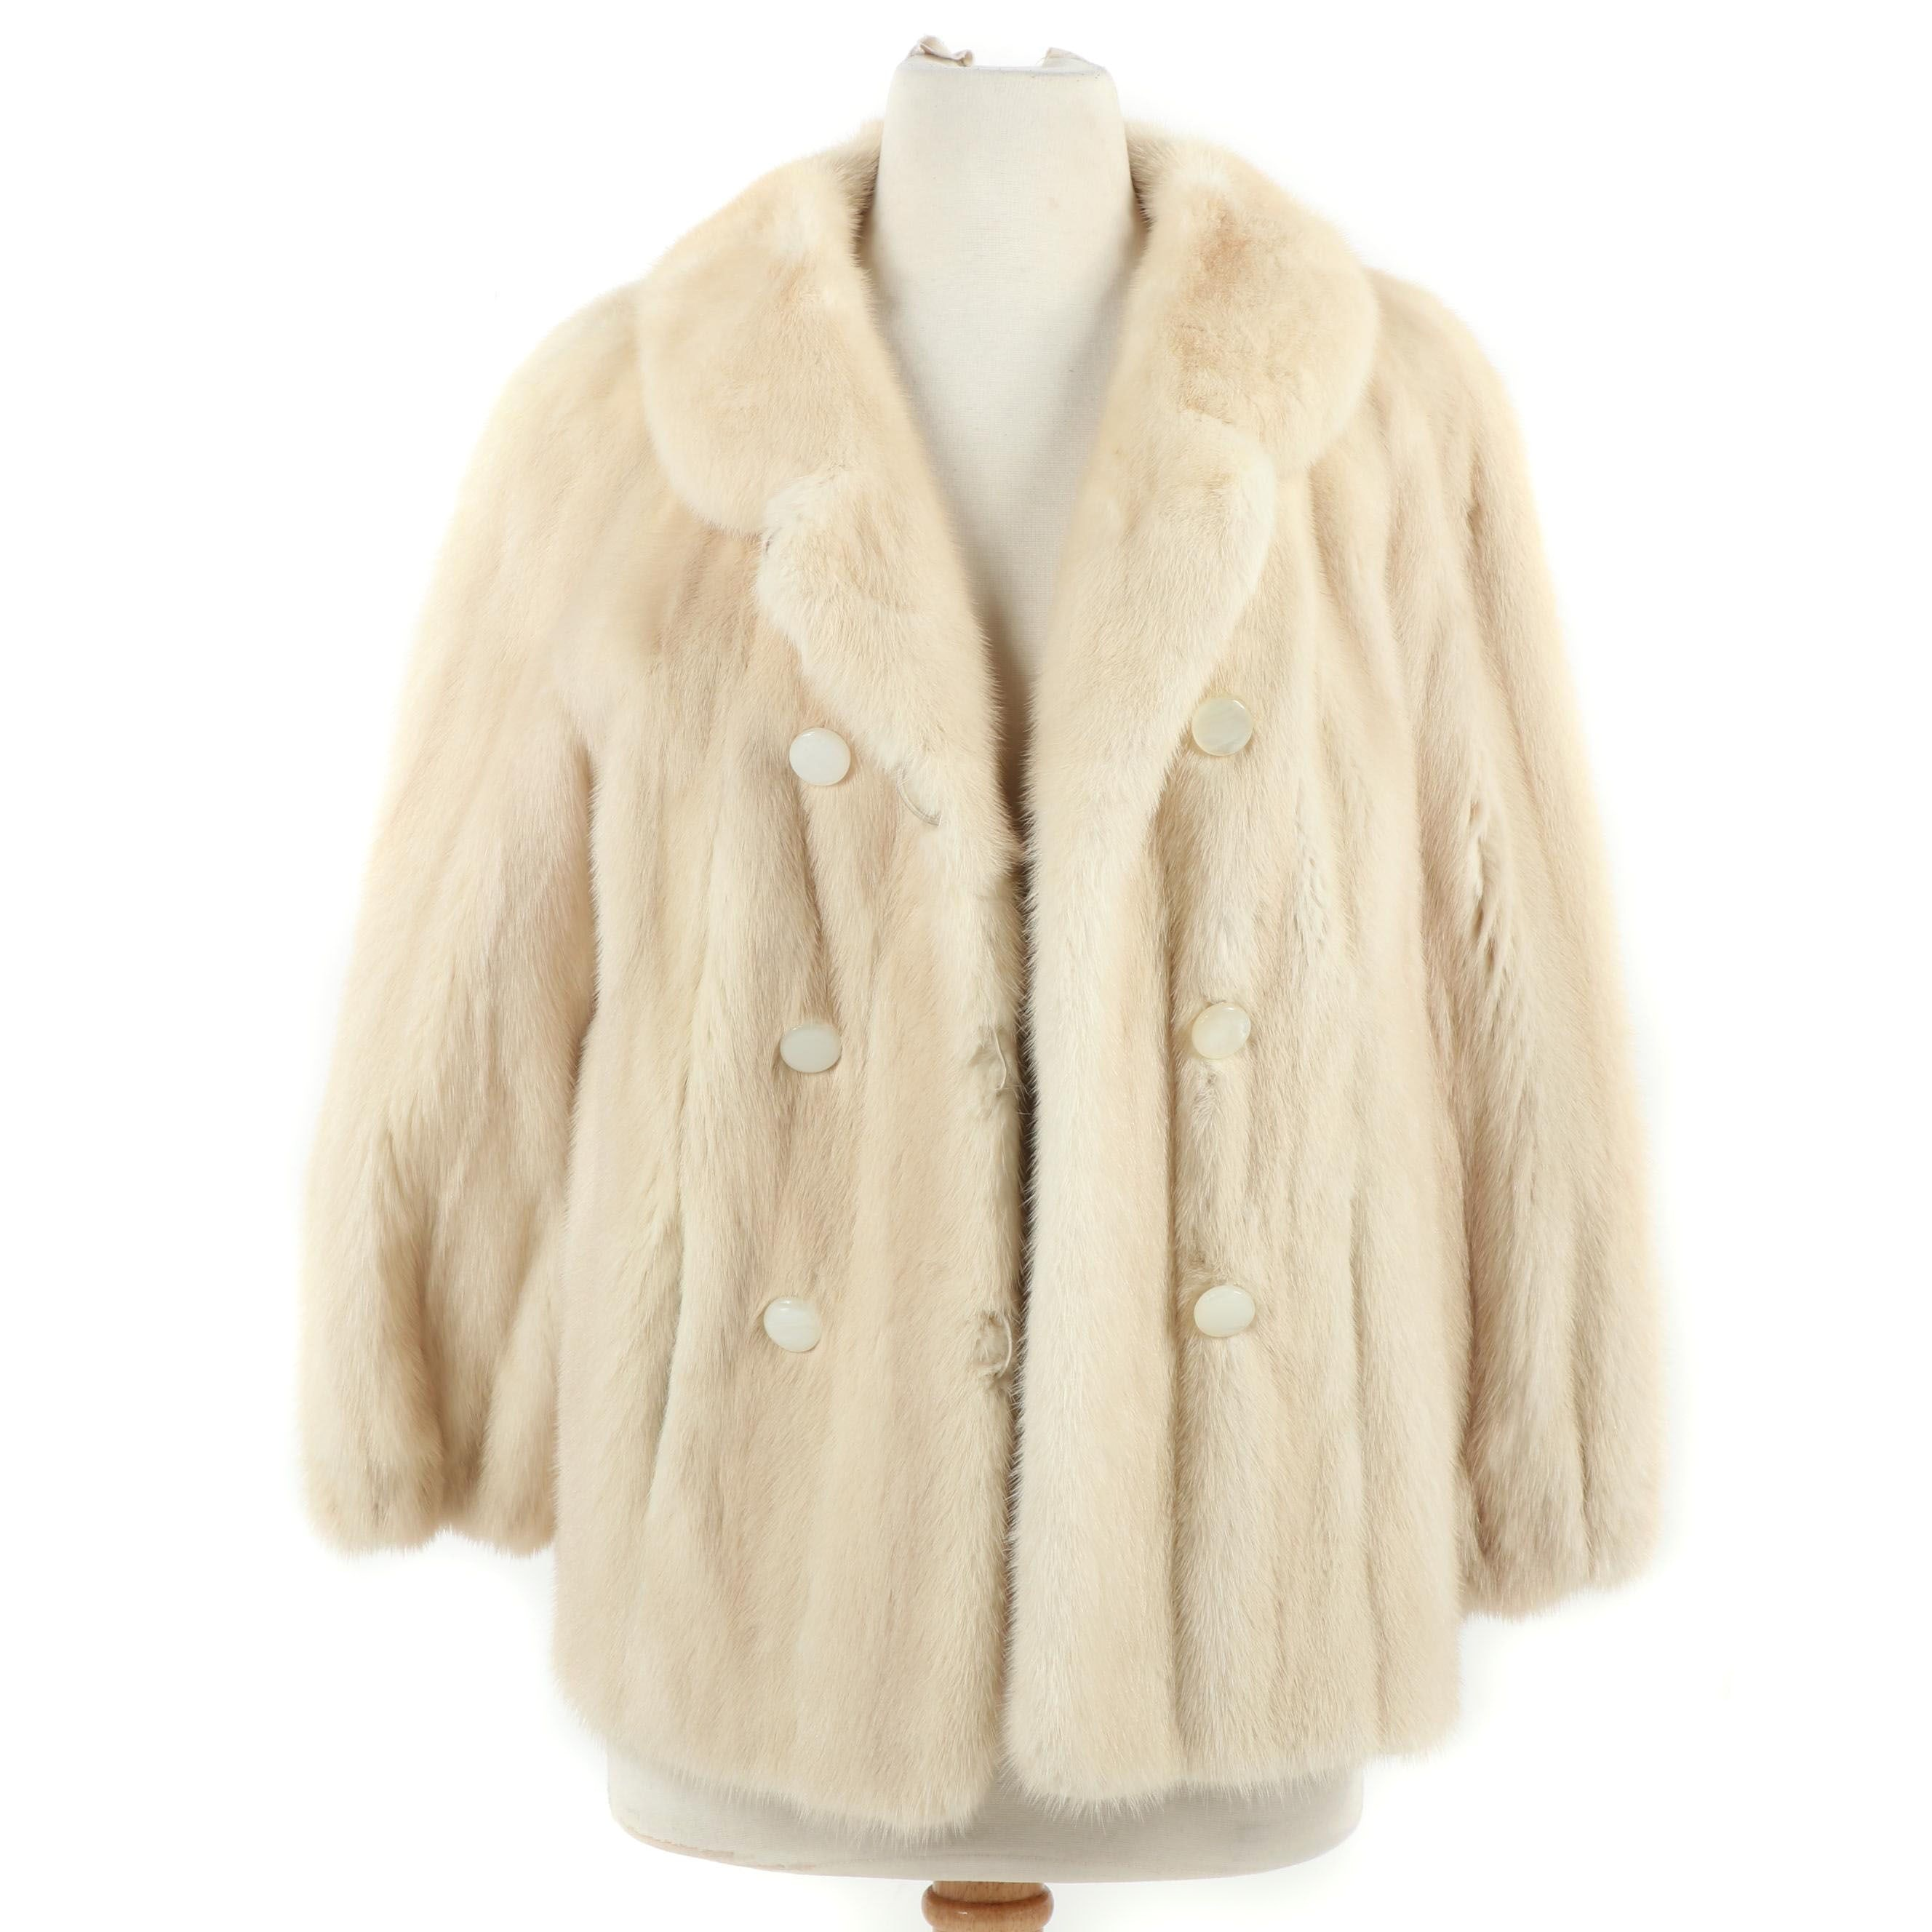 Women's Koslow's Double-Breasted Tourmaline Mink Fur Jacket